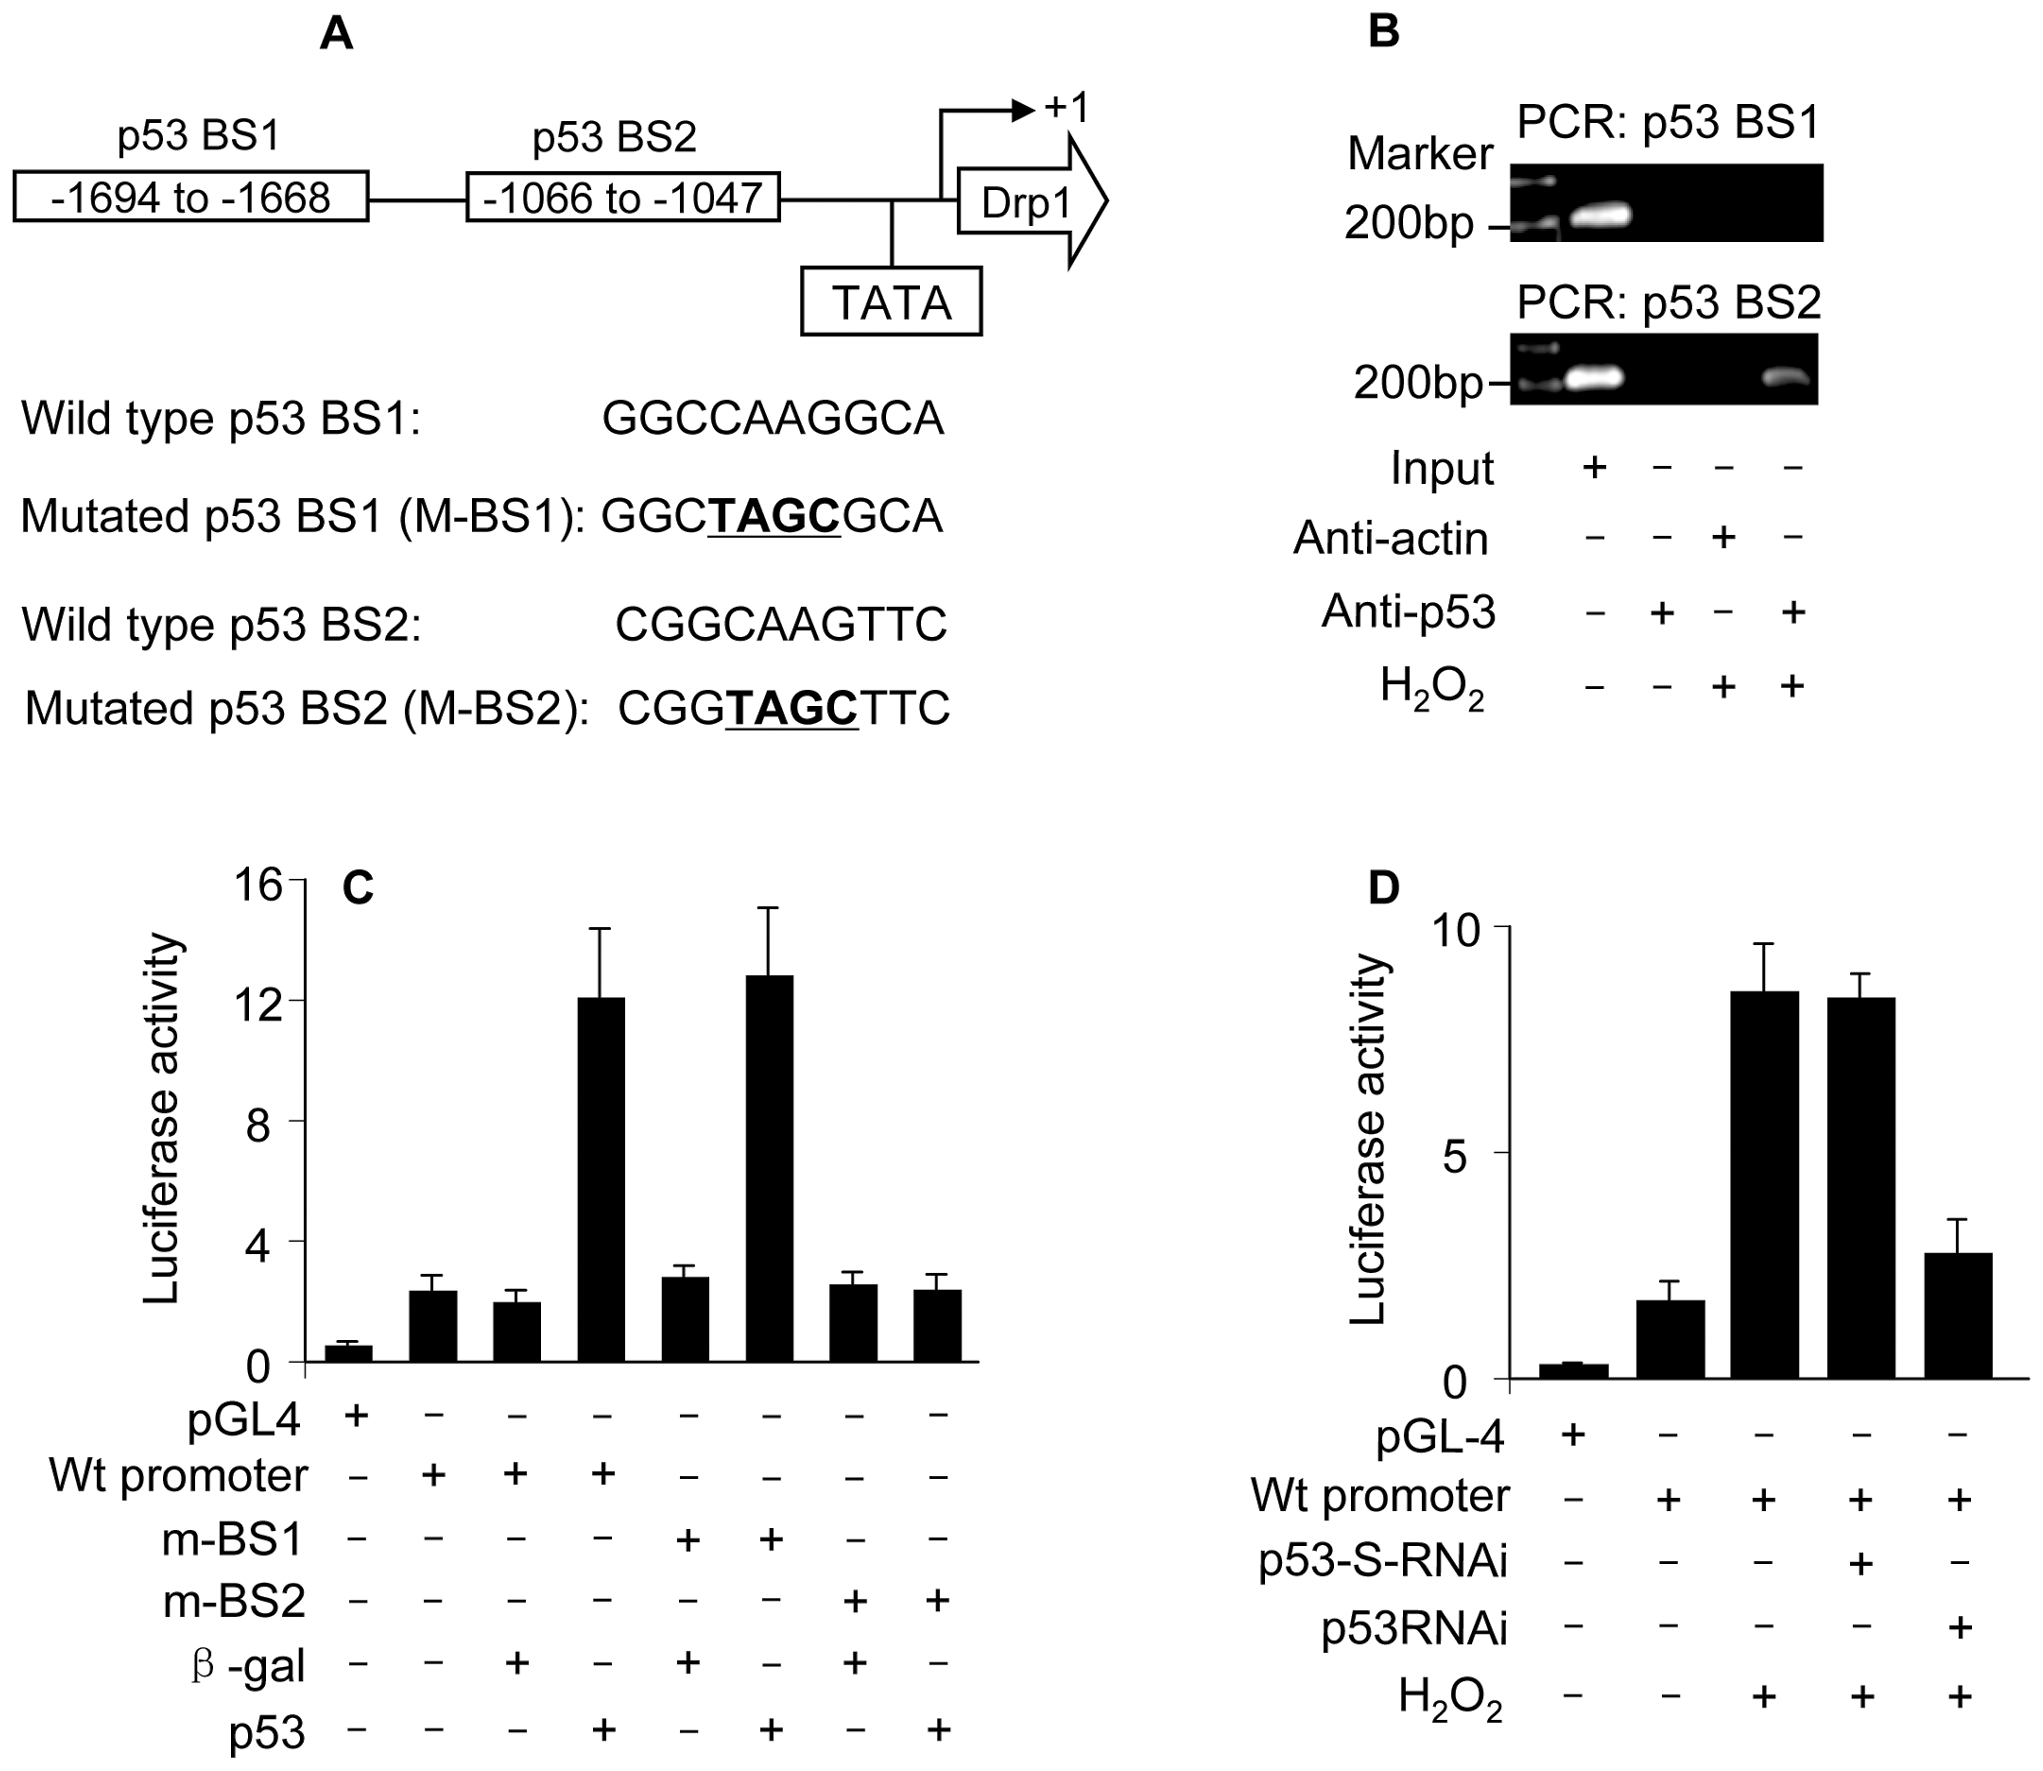 p53 binds to and activates Drp1 promoter.